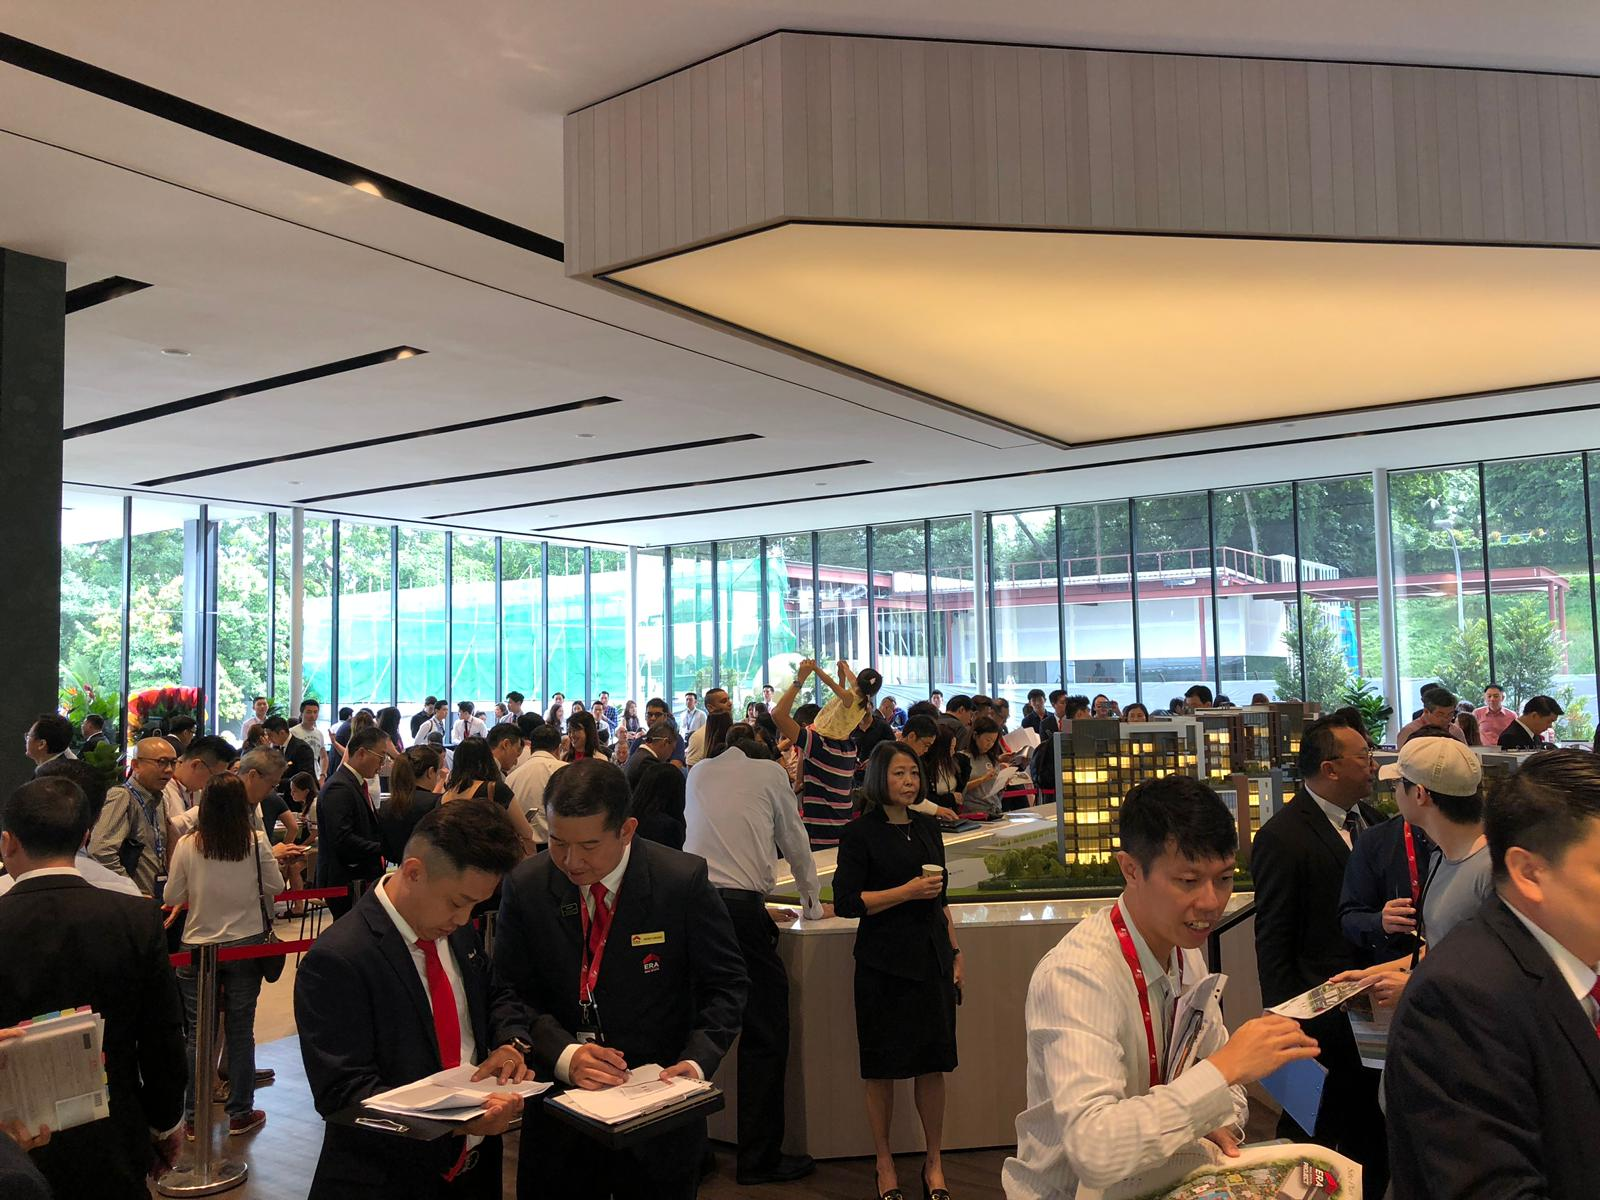 FOURTH AVENUE RESIDENCES - Fourth Avenue Residences saw strong interest at its launch weekend